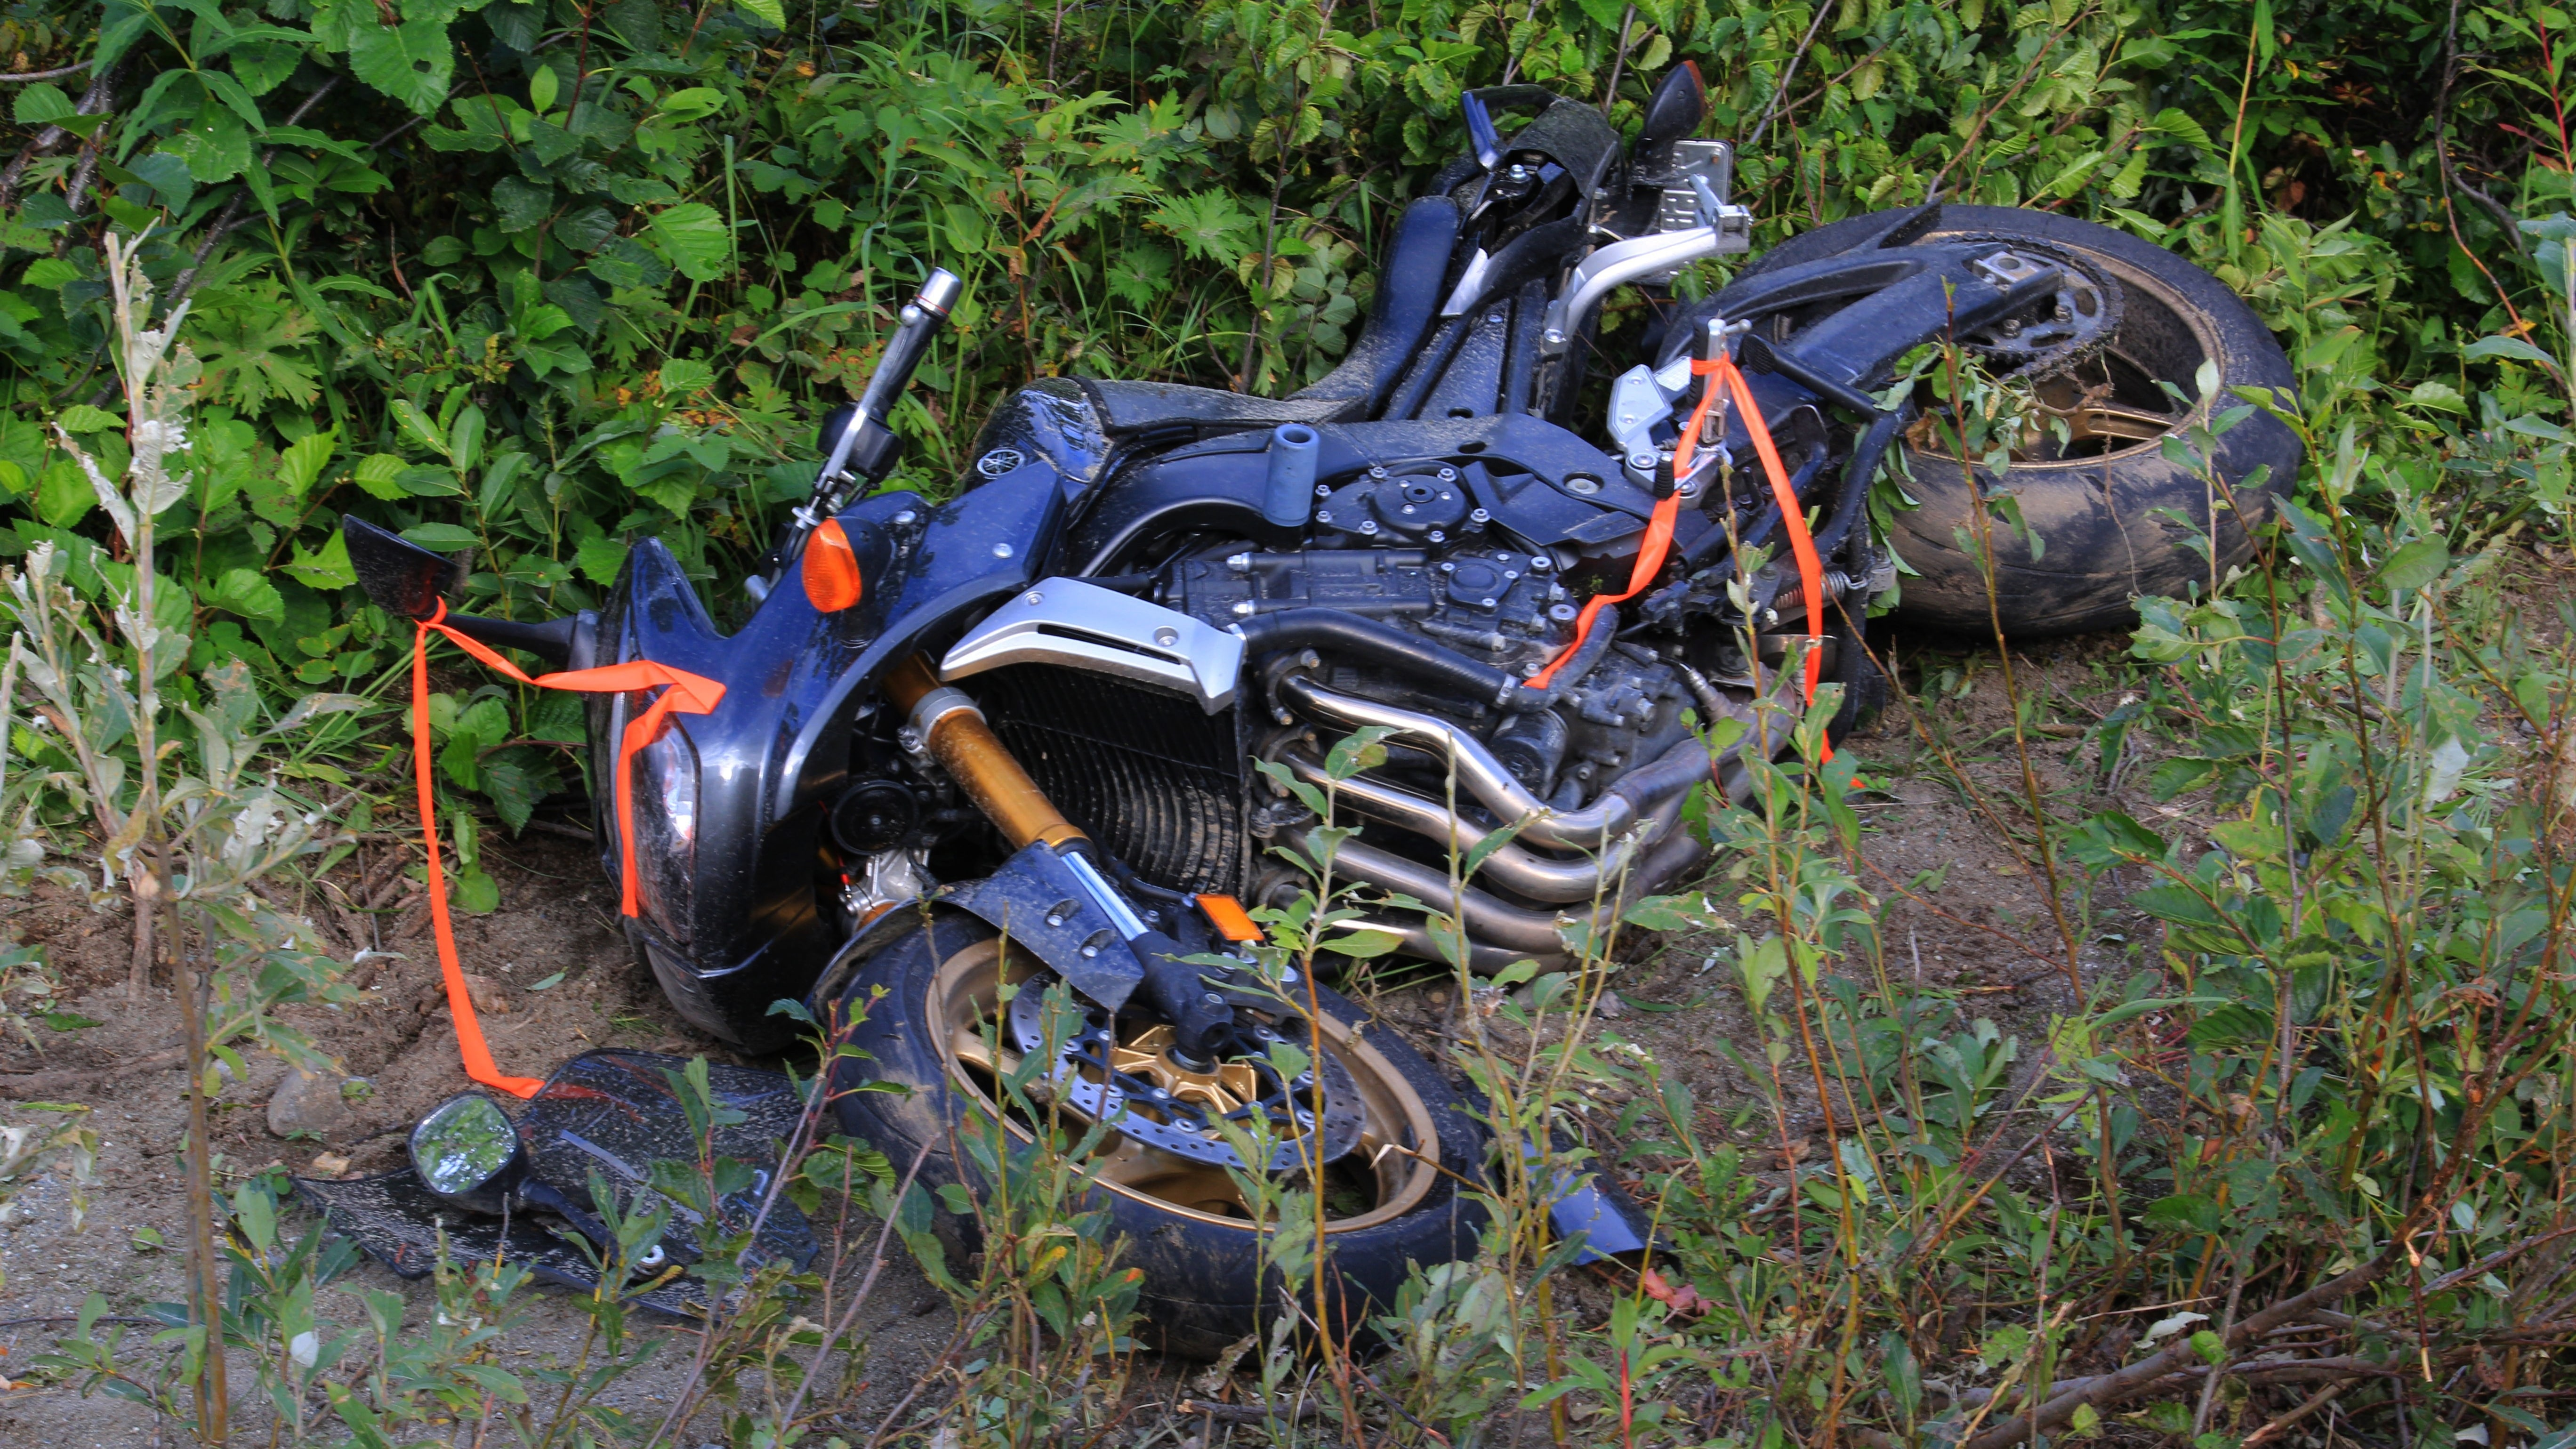 Motorcycle-Pedestrian Accidents and Injuries